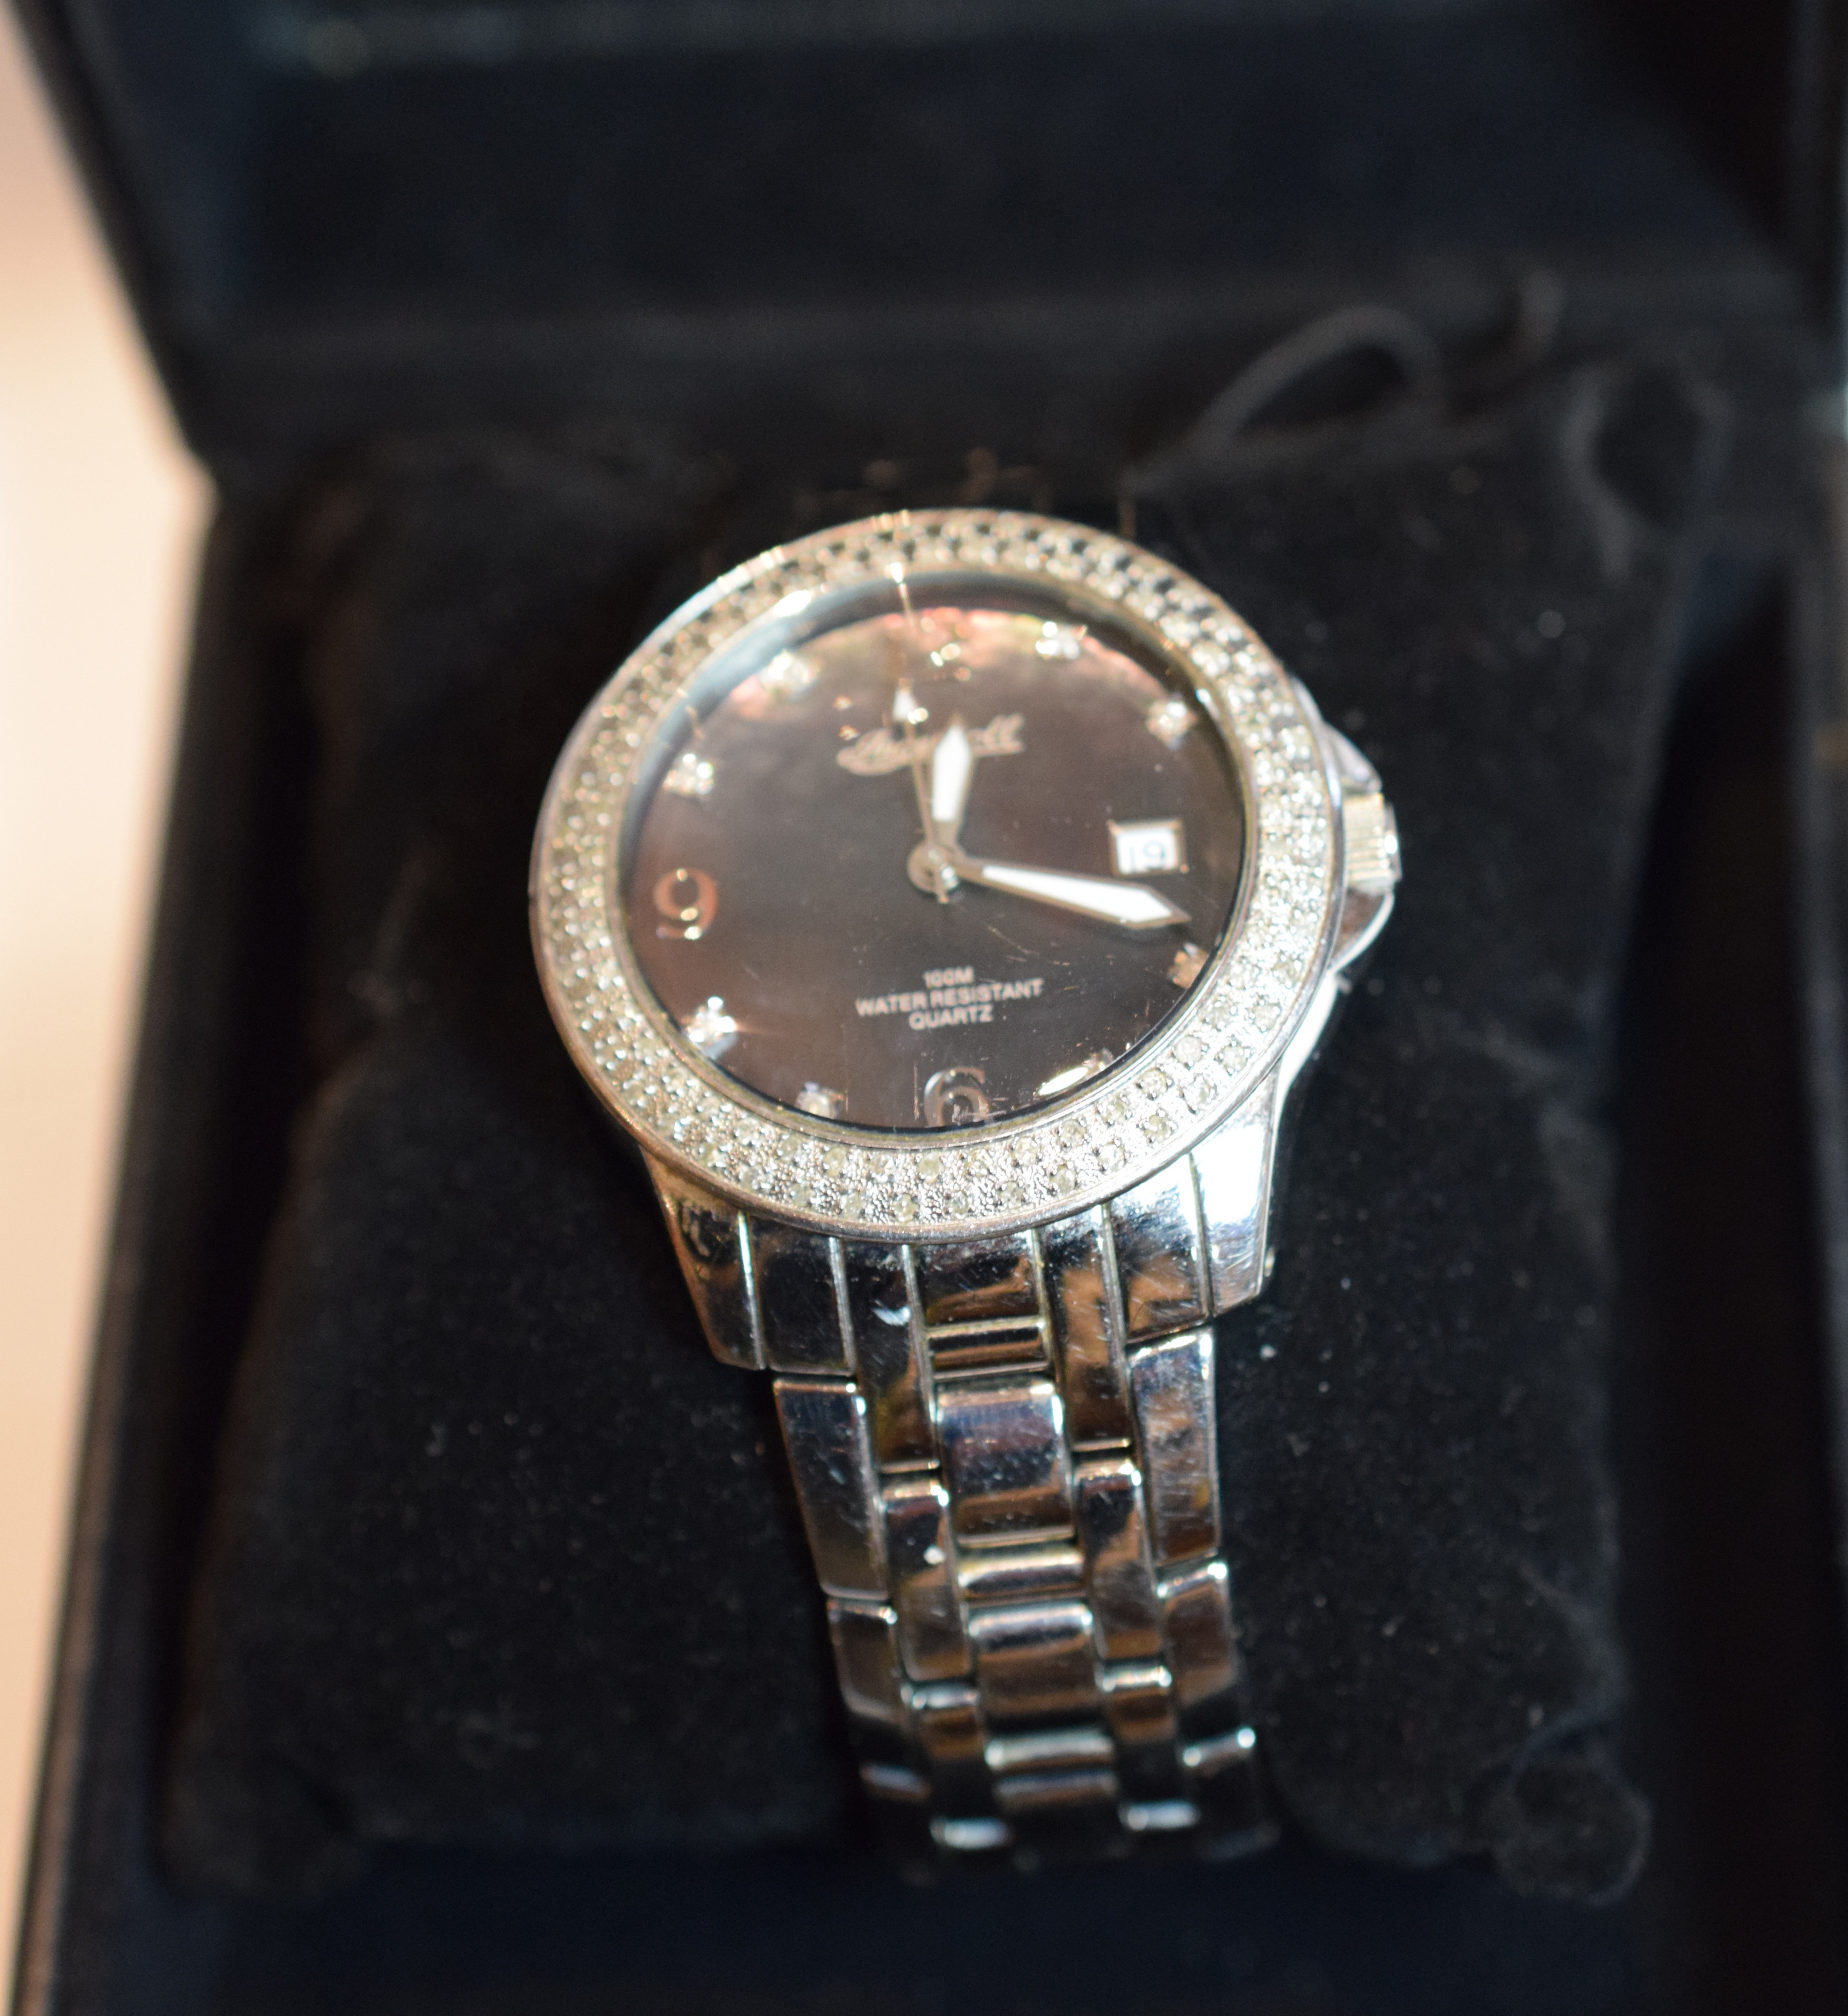 Ingersoll Diamond Watch Price